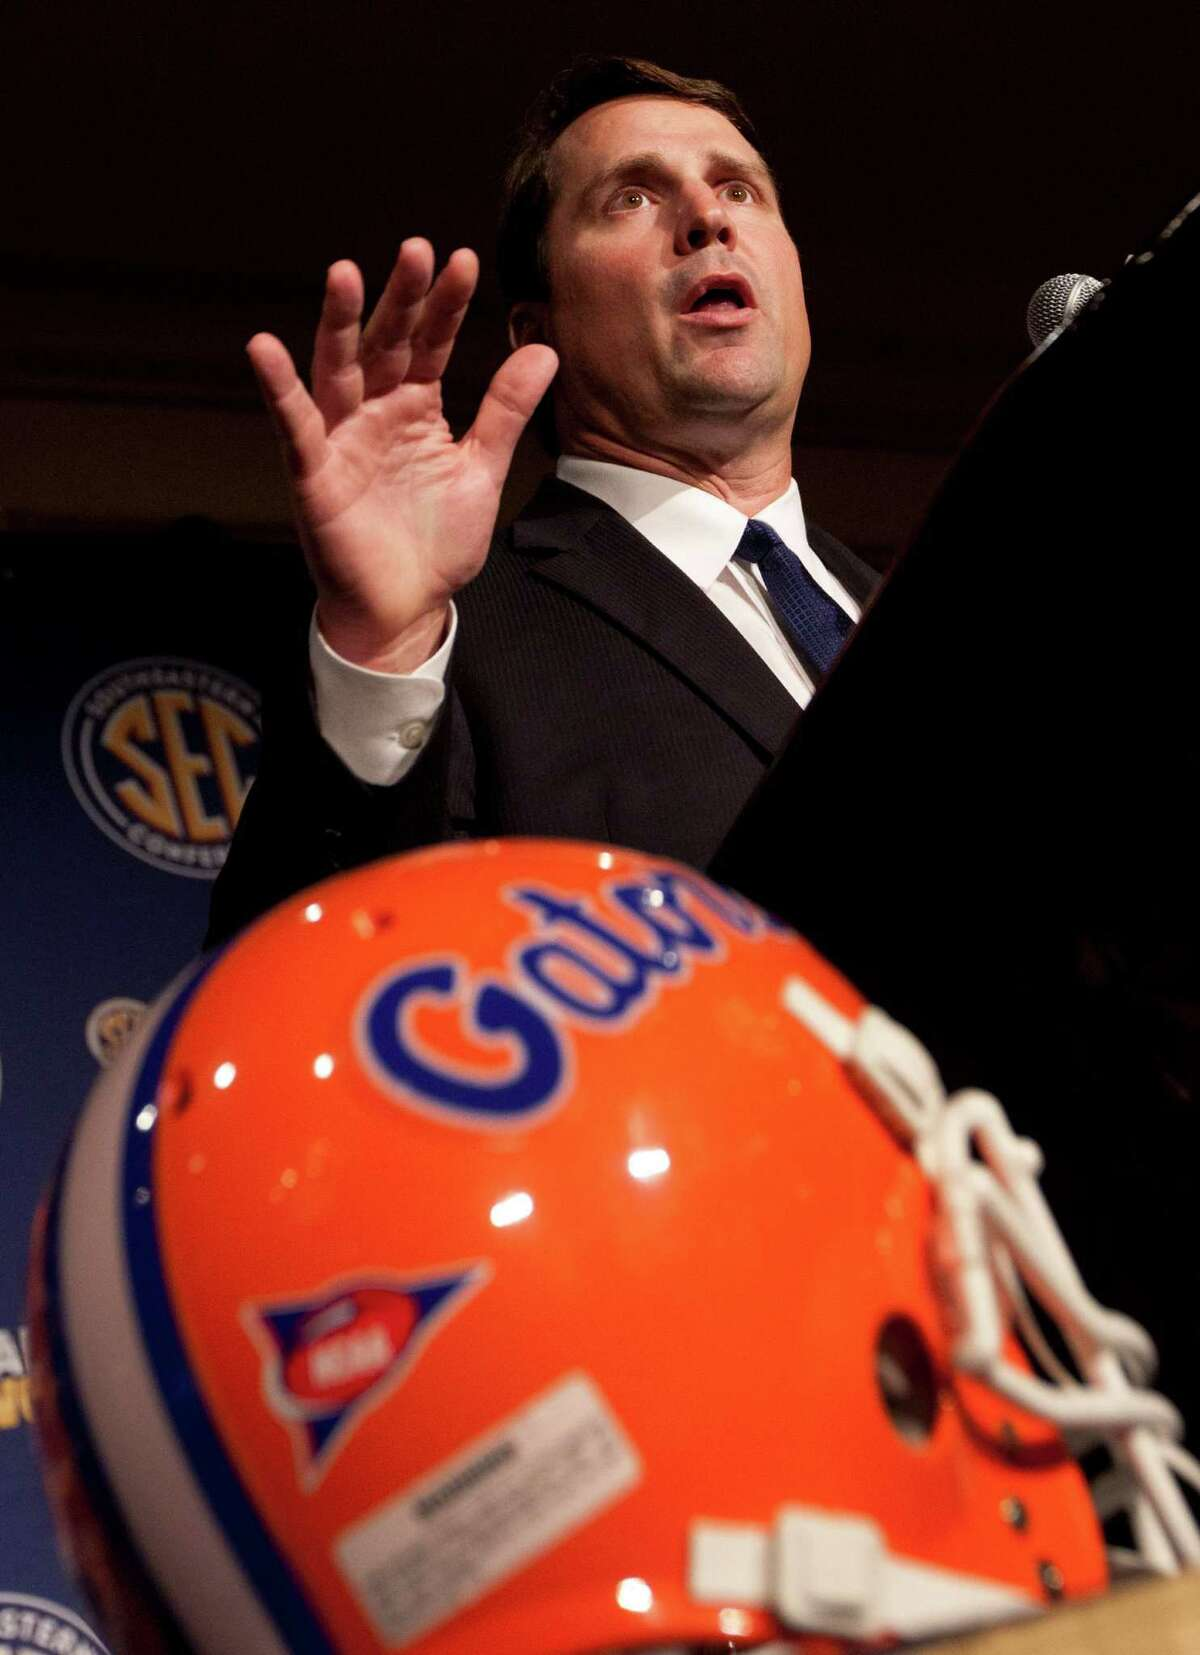 Florida coach Will Muschamp talks with reporters during Southeastern Conference Football Media Days in Birmingham, Ala., Wednesday, July 20, 2011.